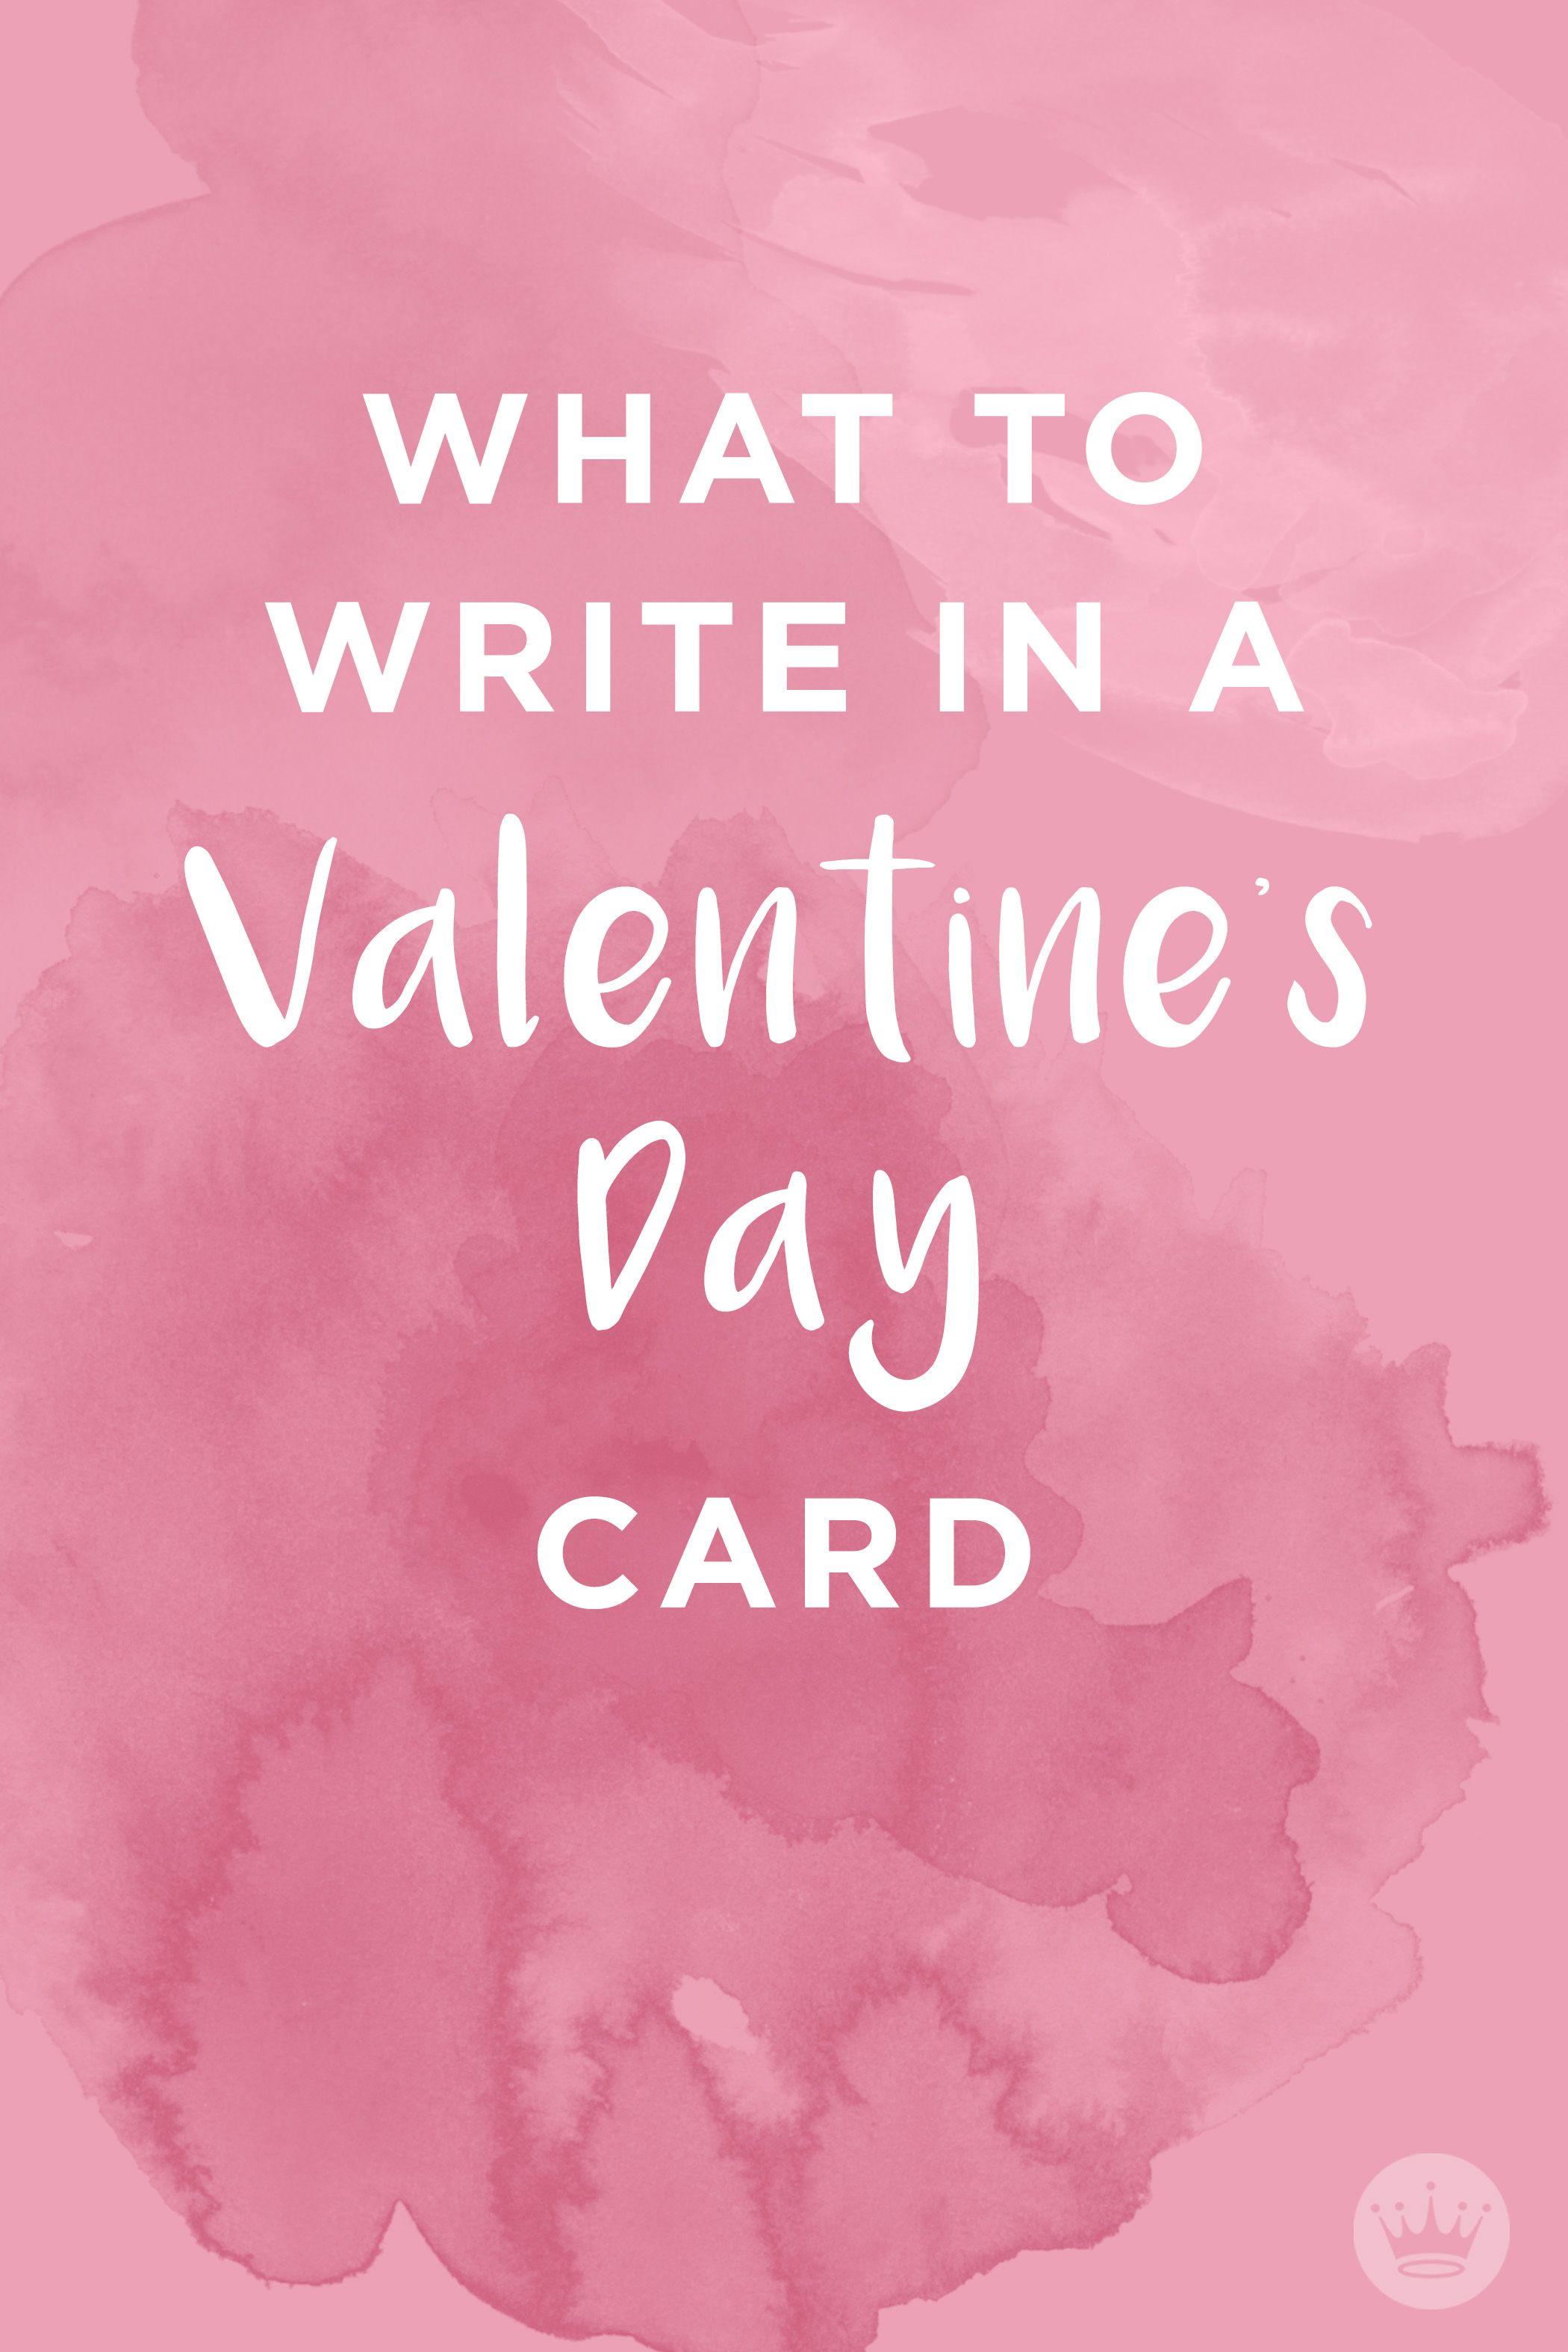 funny valentines day cards 2021